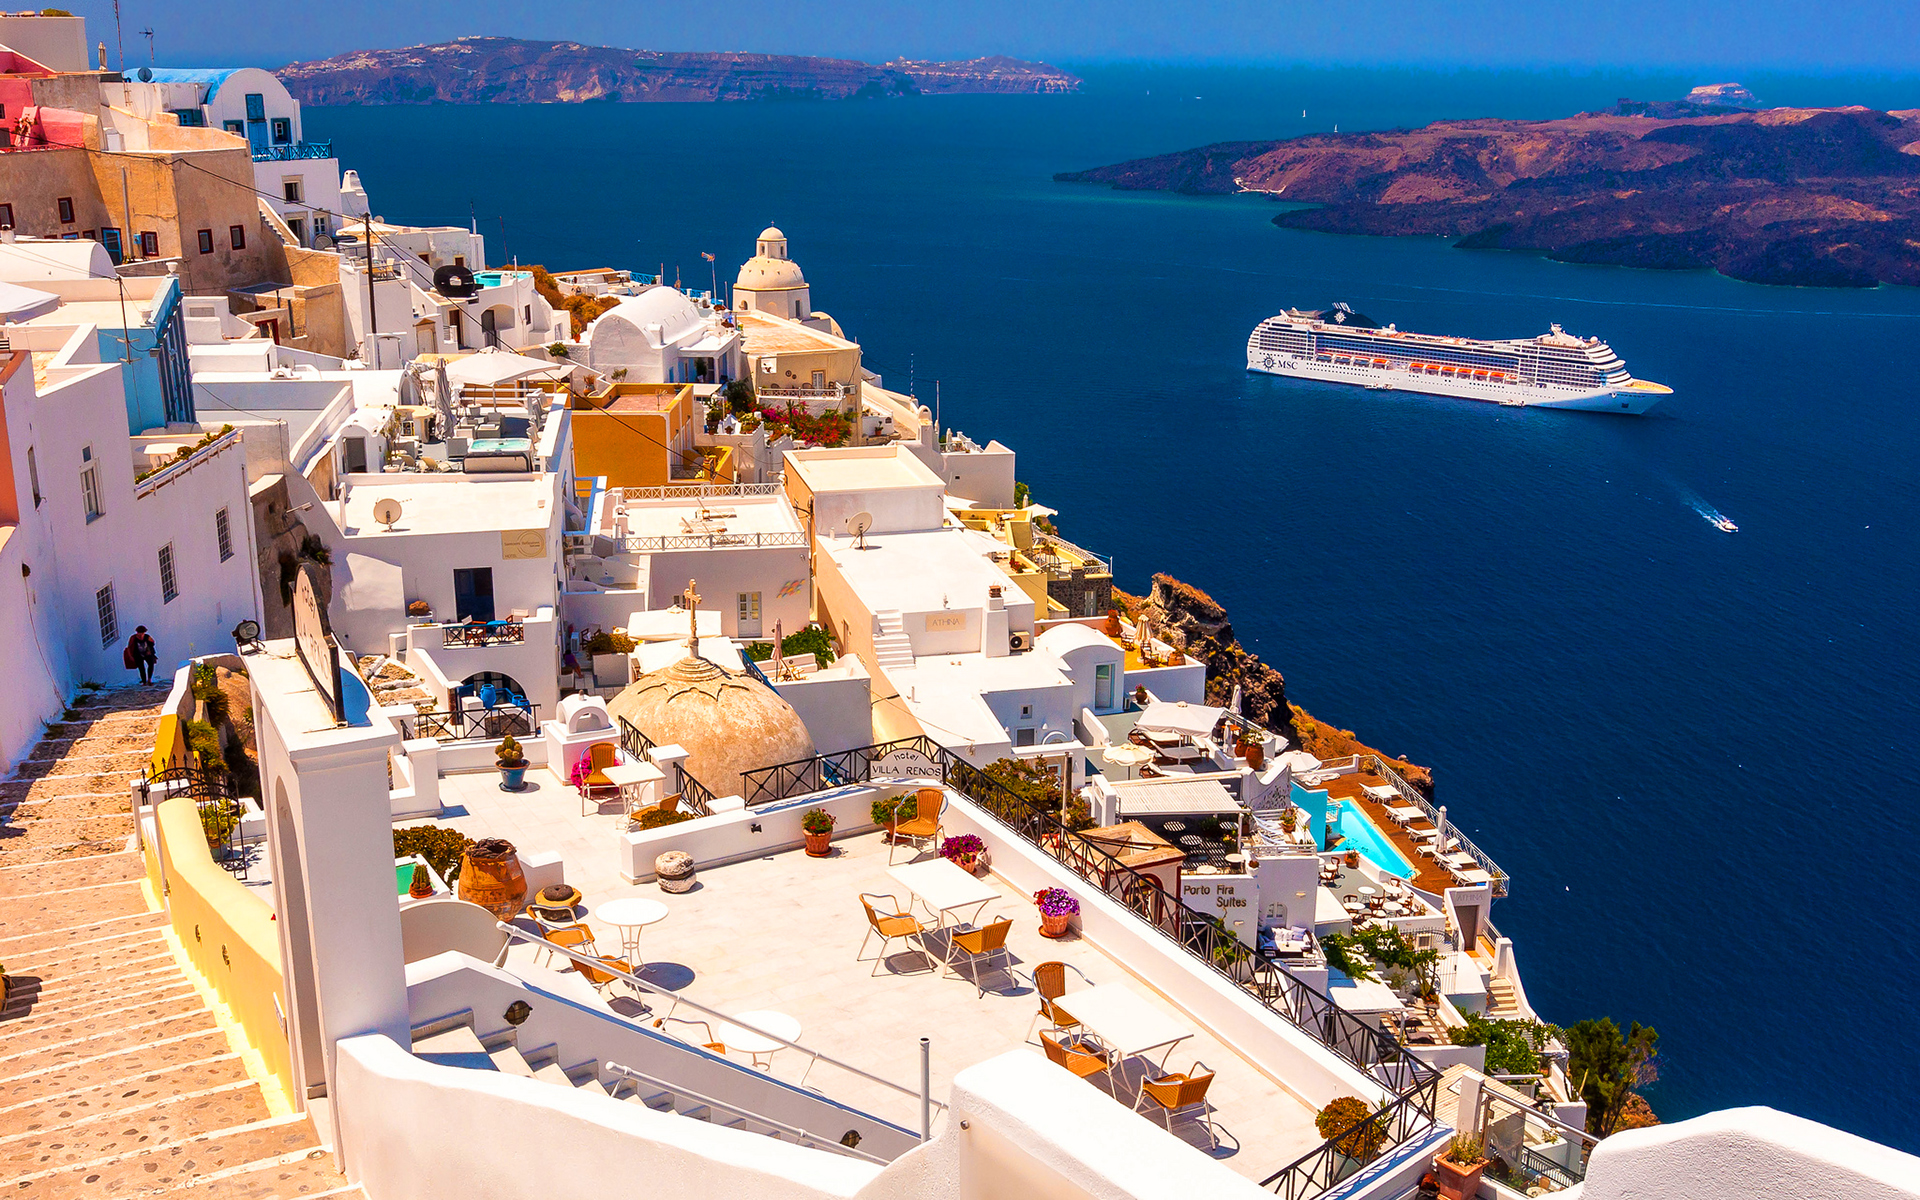 Santorini cruising ship